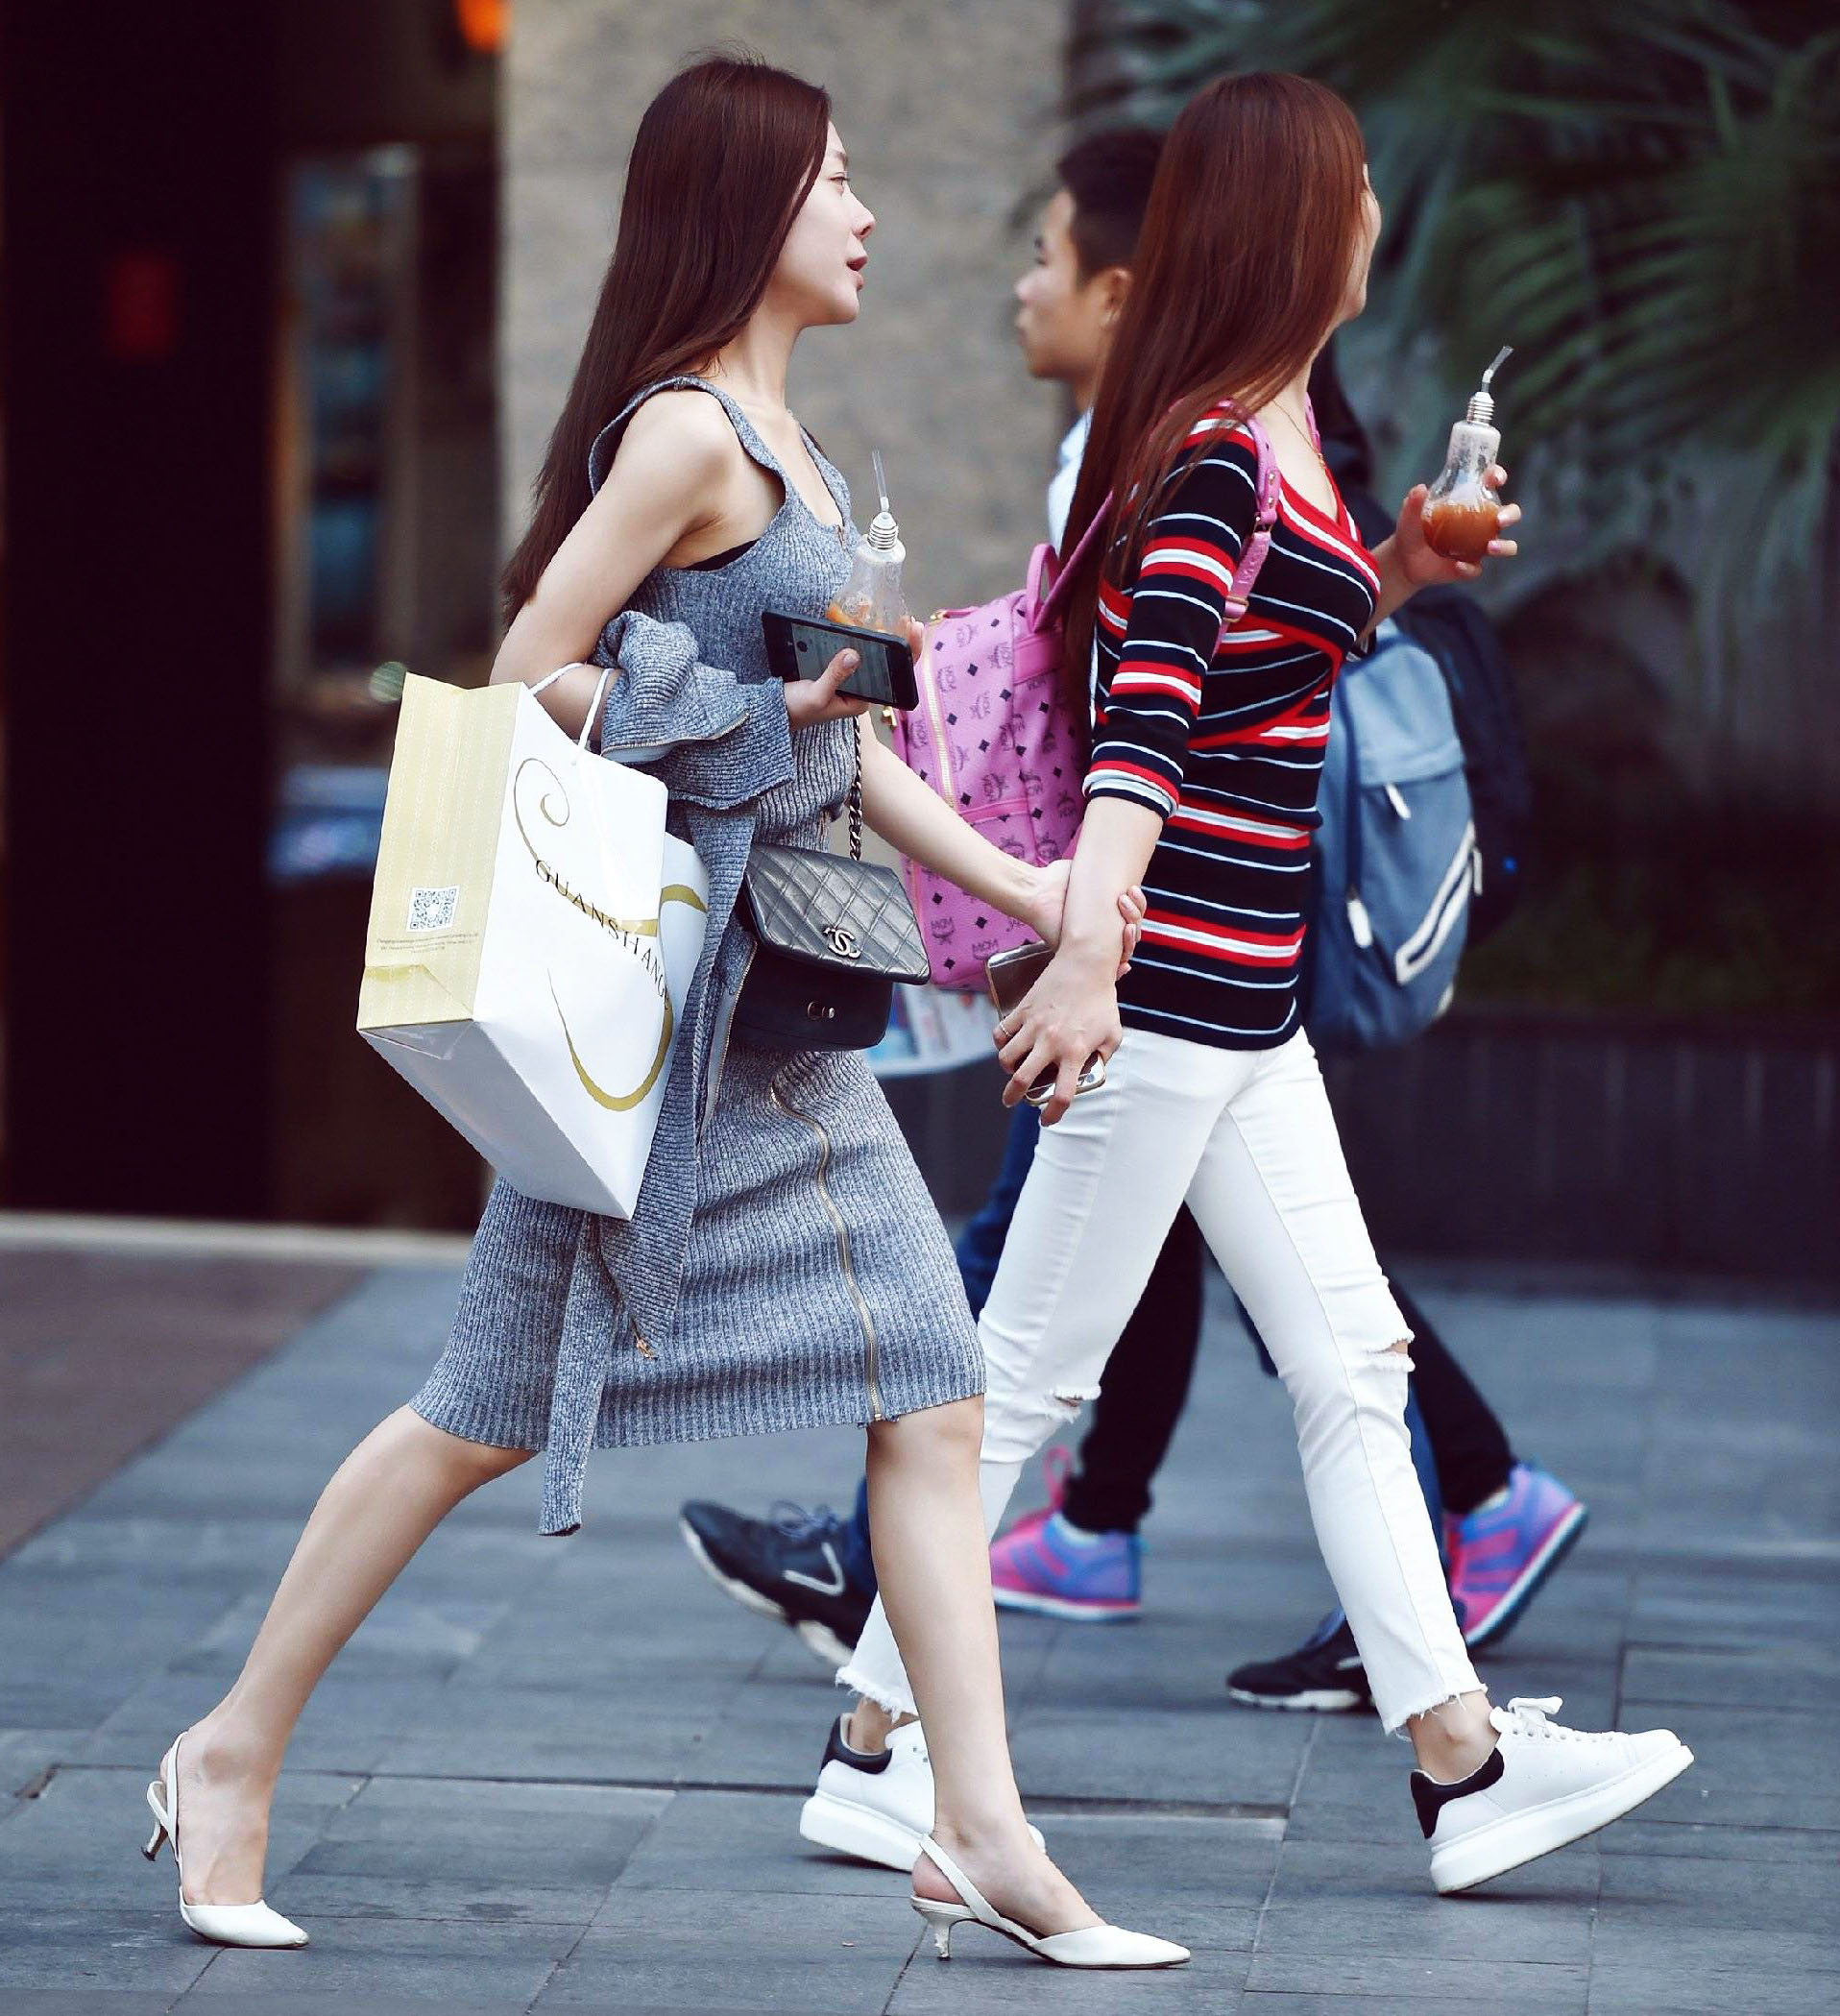 Chinese ladies shopping